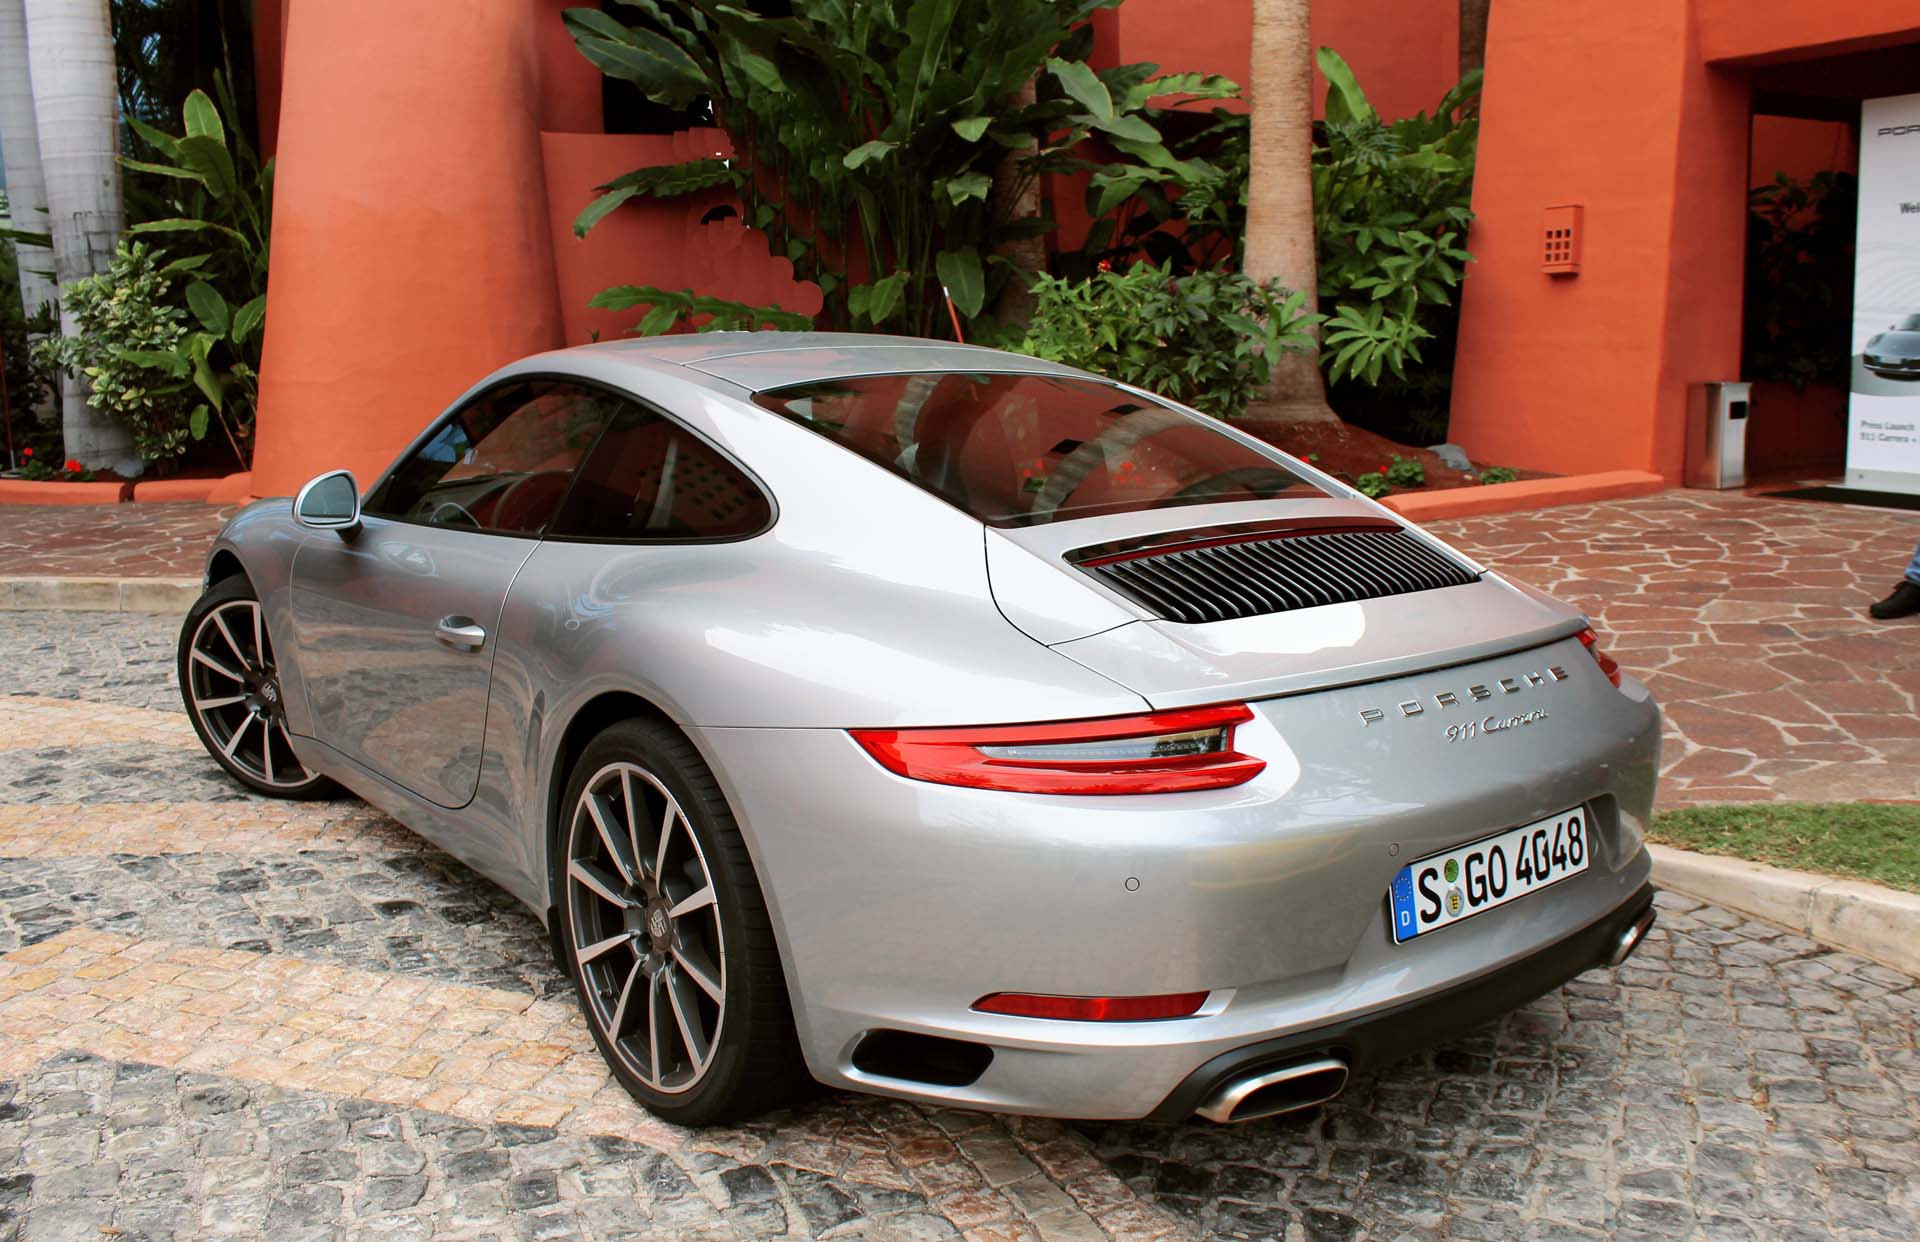 But let's not leave the base 370 hp Carrera out of this. While the outgoing 3.4L Carrera could feel a bit off pace before the tach swung hard right, this 2017 370-hp turbo Carrera does not give up much in the way of perceived pace to the bigger brother S. It feels damned fast too, and also benefits from all the improvements to handling, ride quality and fuel economy.